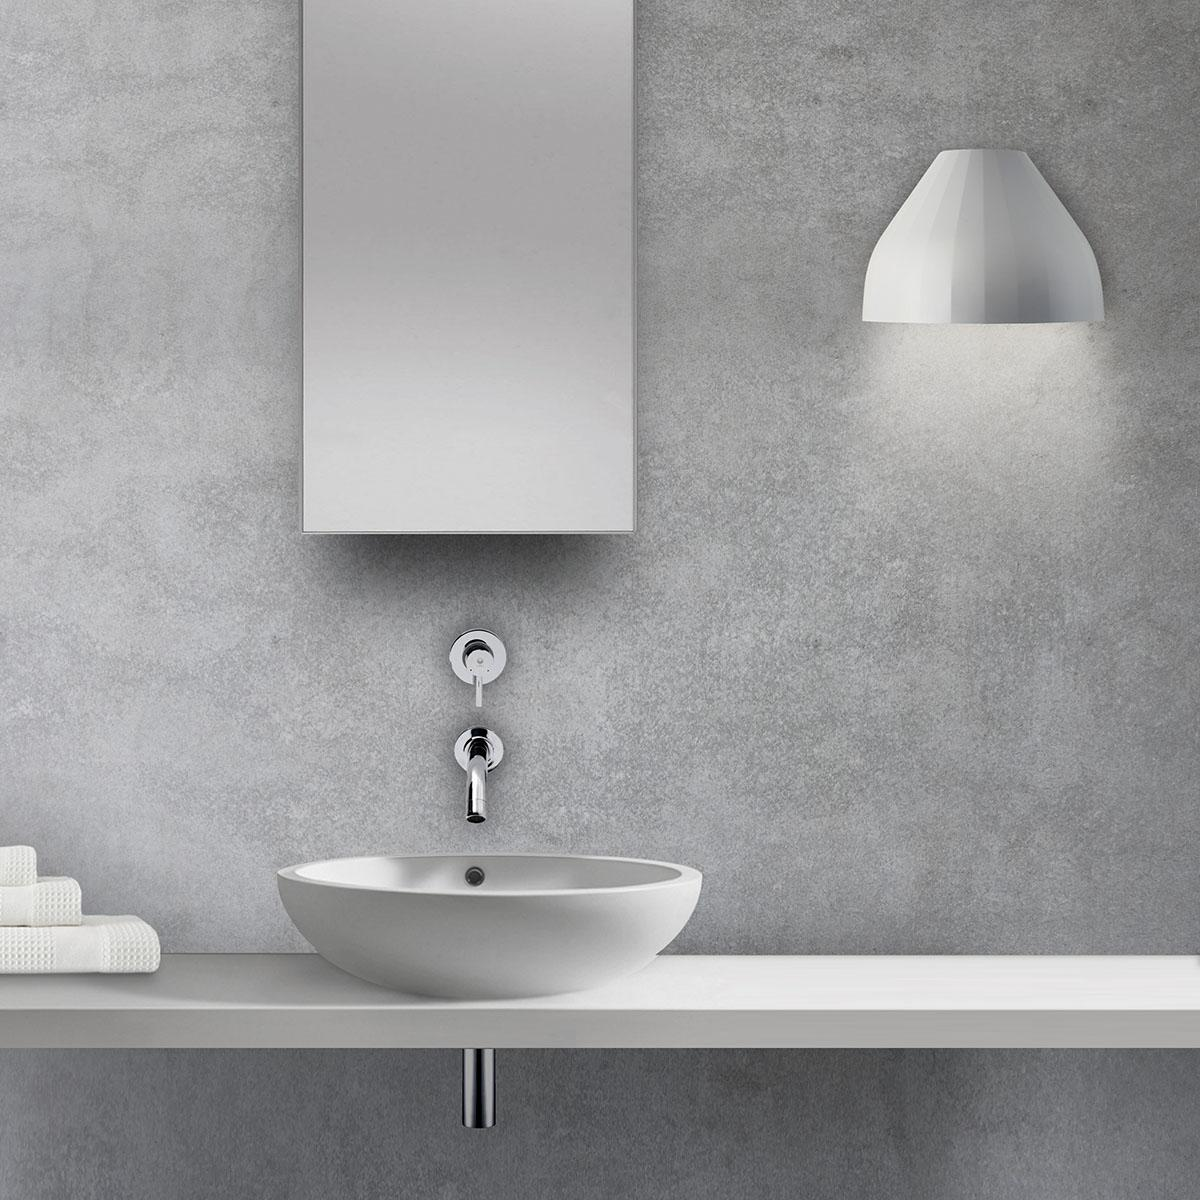 _0013_FACET GREY INDOOR BATHROOM_NEW